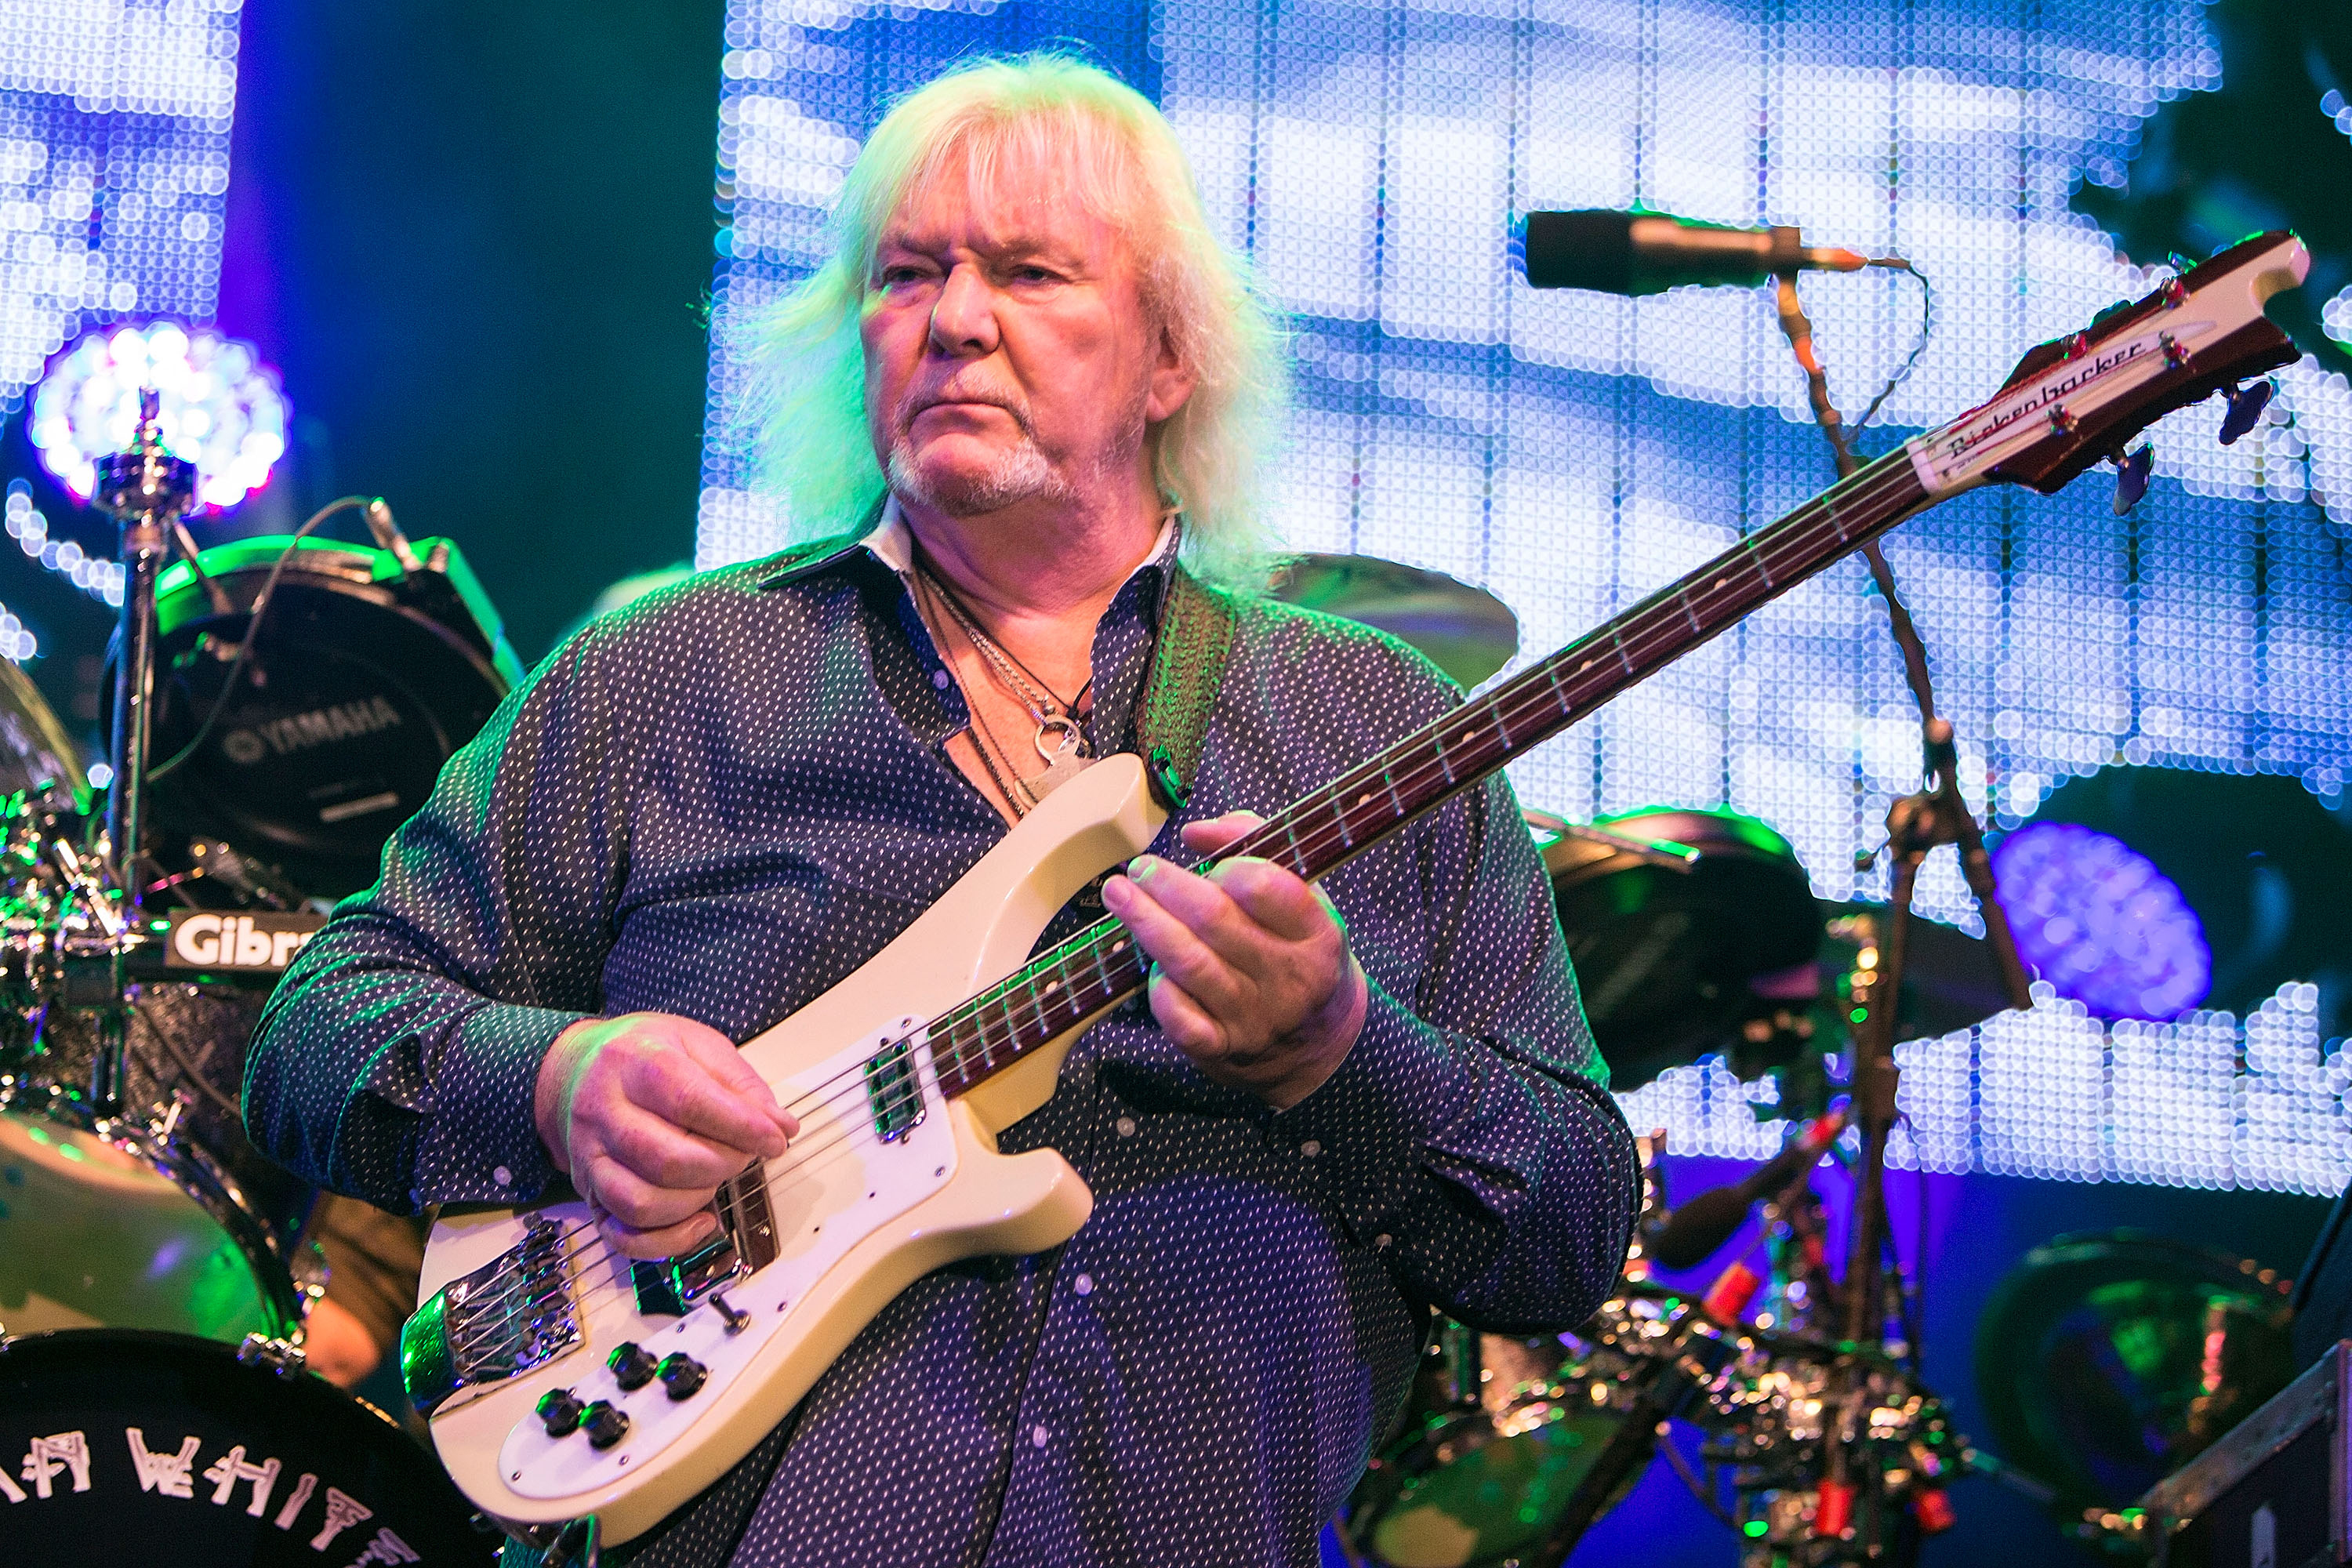 Musician Chris Squire performs on stage with Yes on August 18, 2014 in San Diego, Calif.